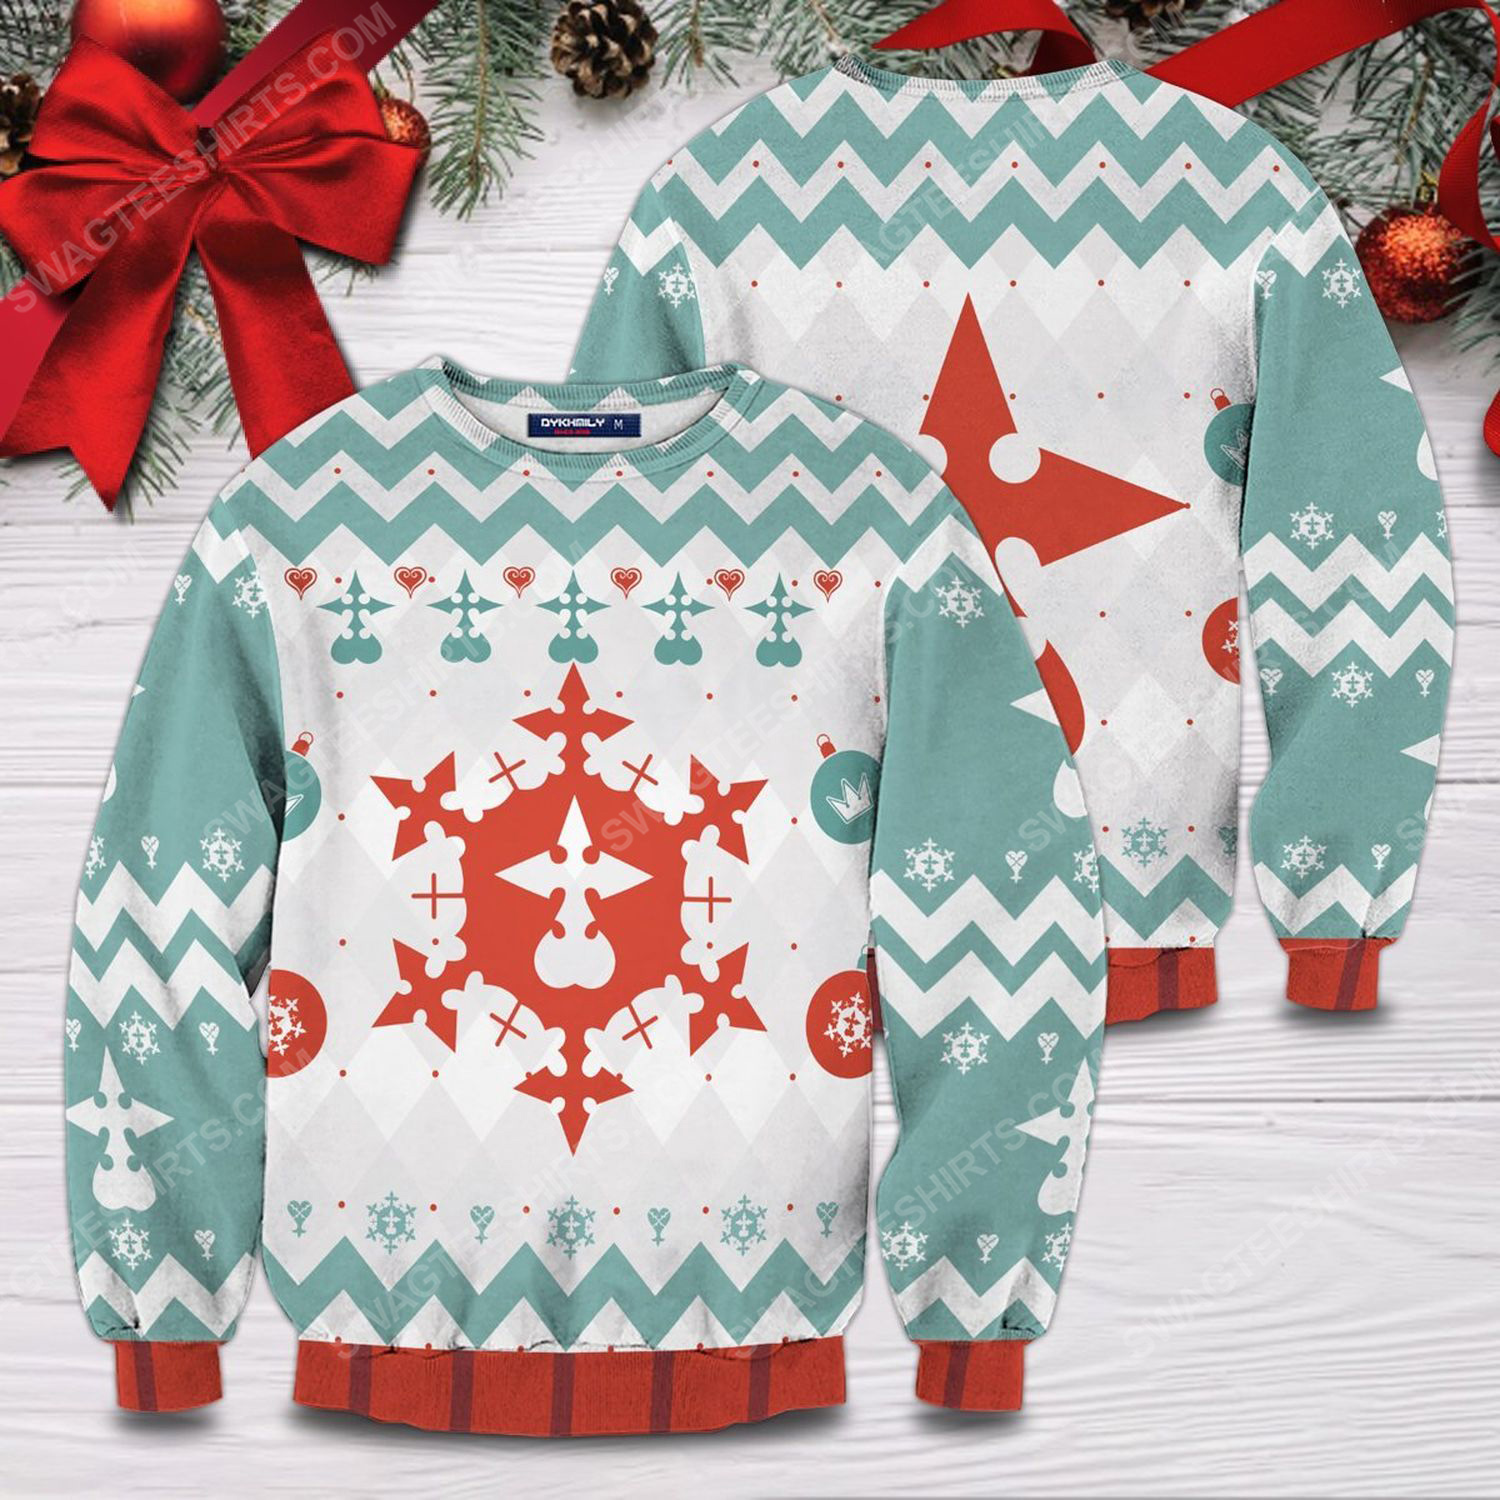 Merry xemnas full printing ugly christmas sweater 1